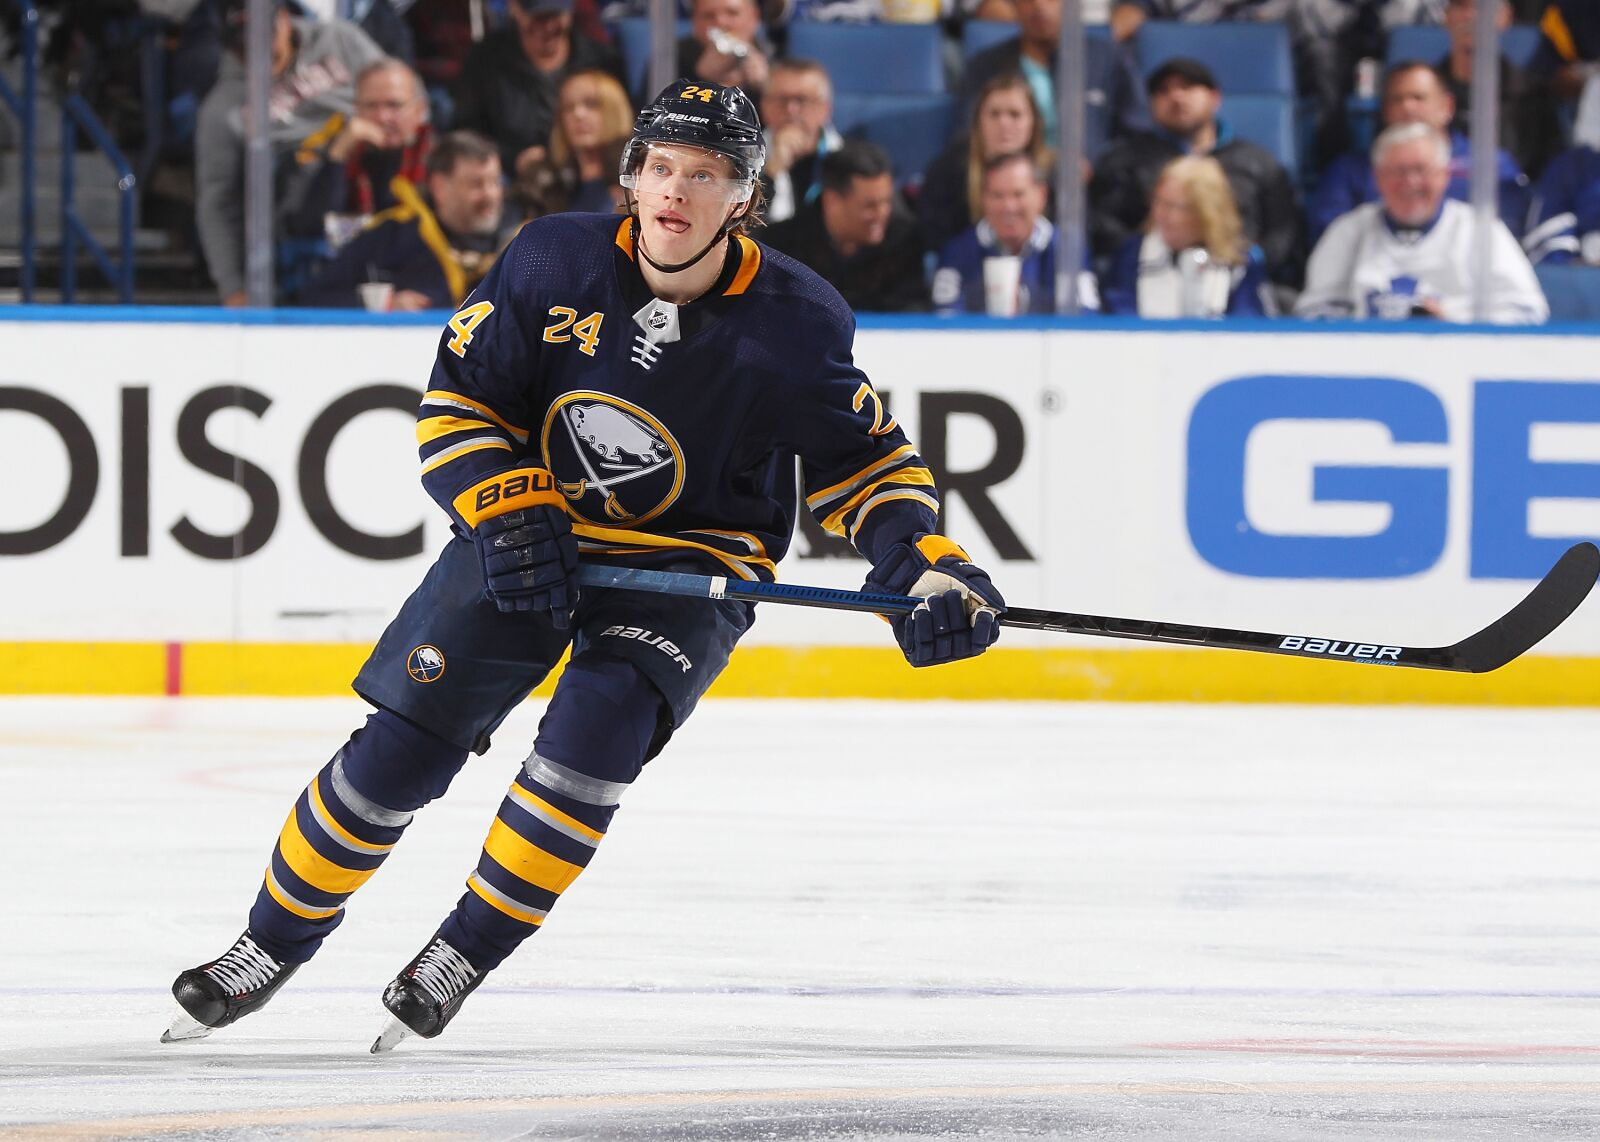 Buffalo Sabres: Lawrence Pilut Returns to Action